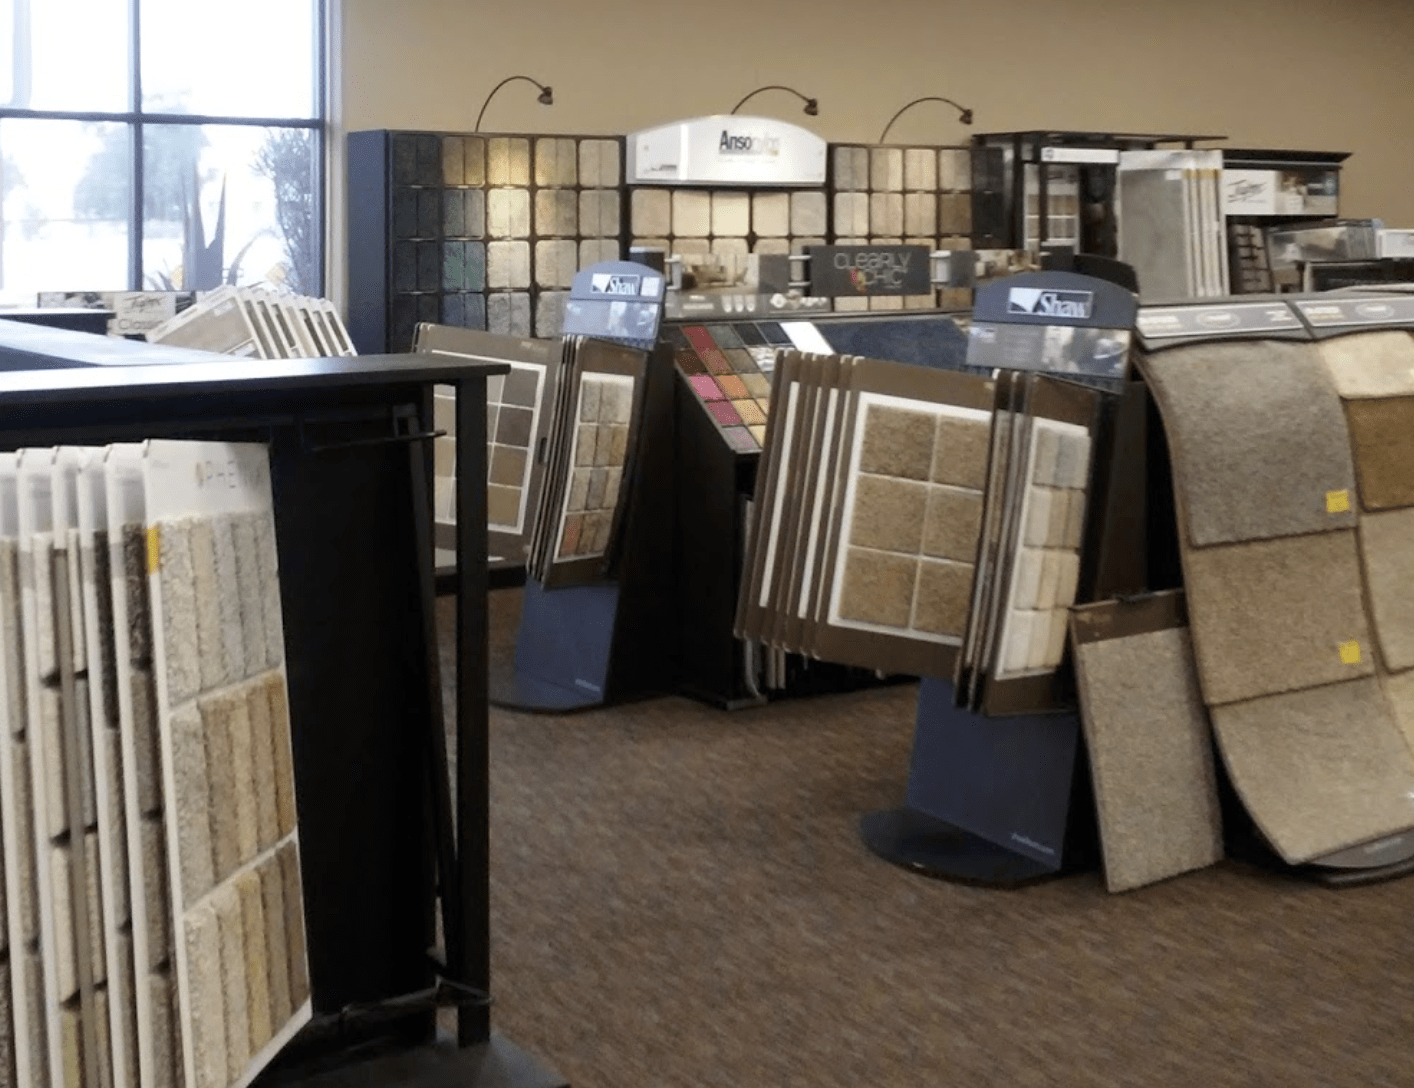 Walk through our displays here at Floor Source in Phoenix, AZ